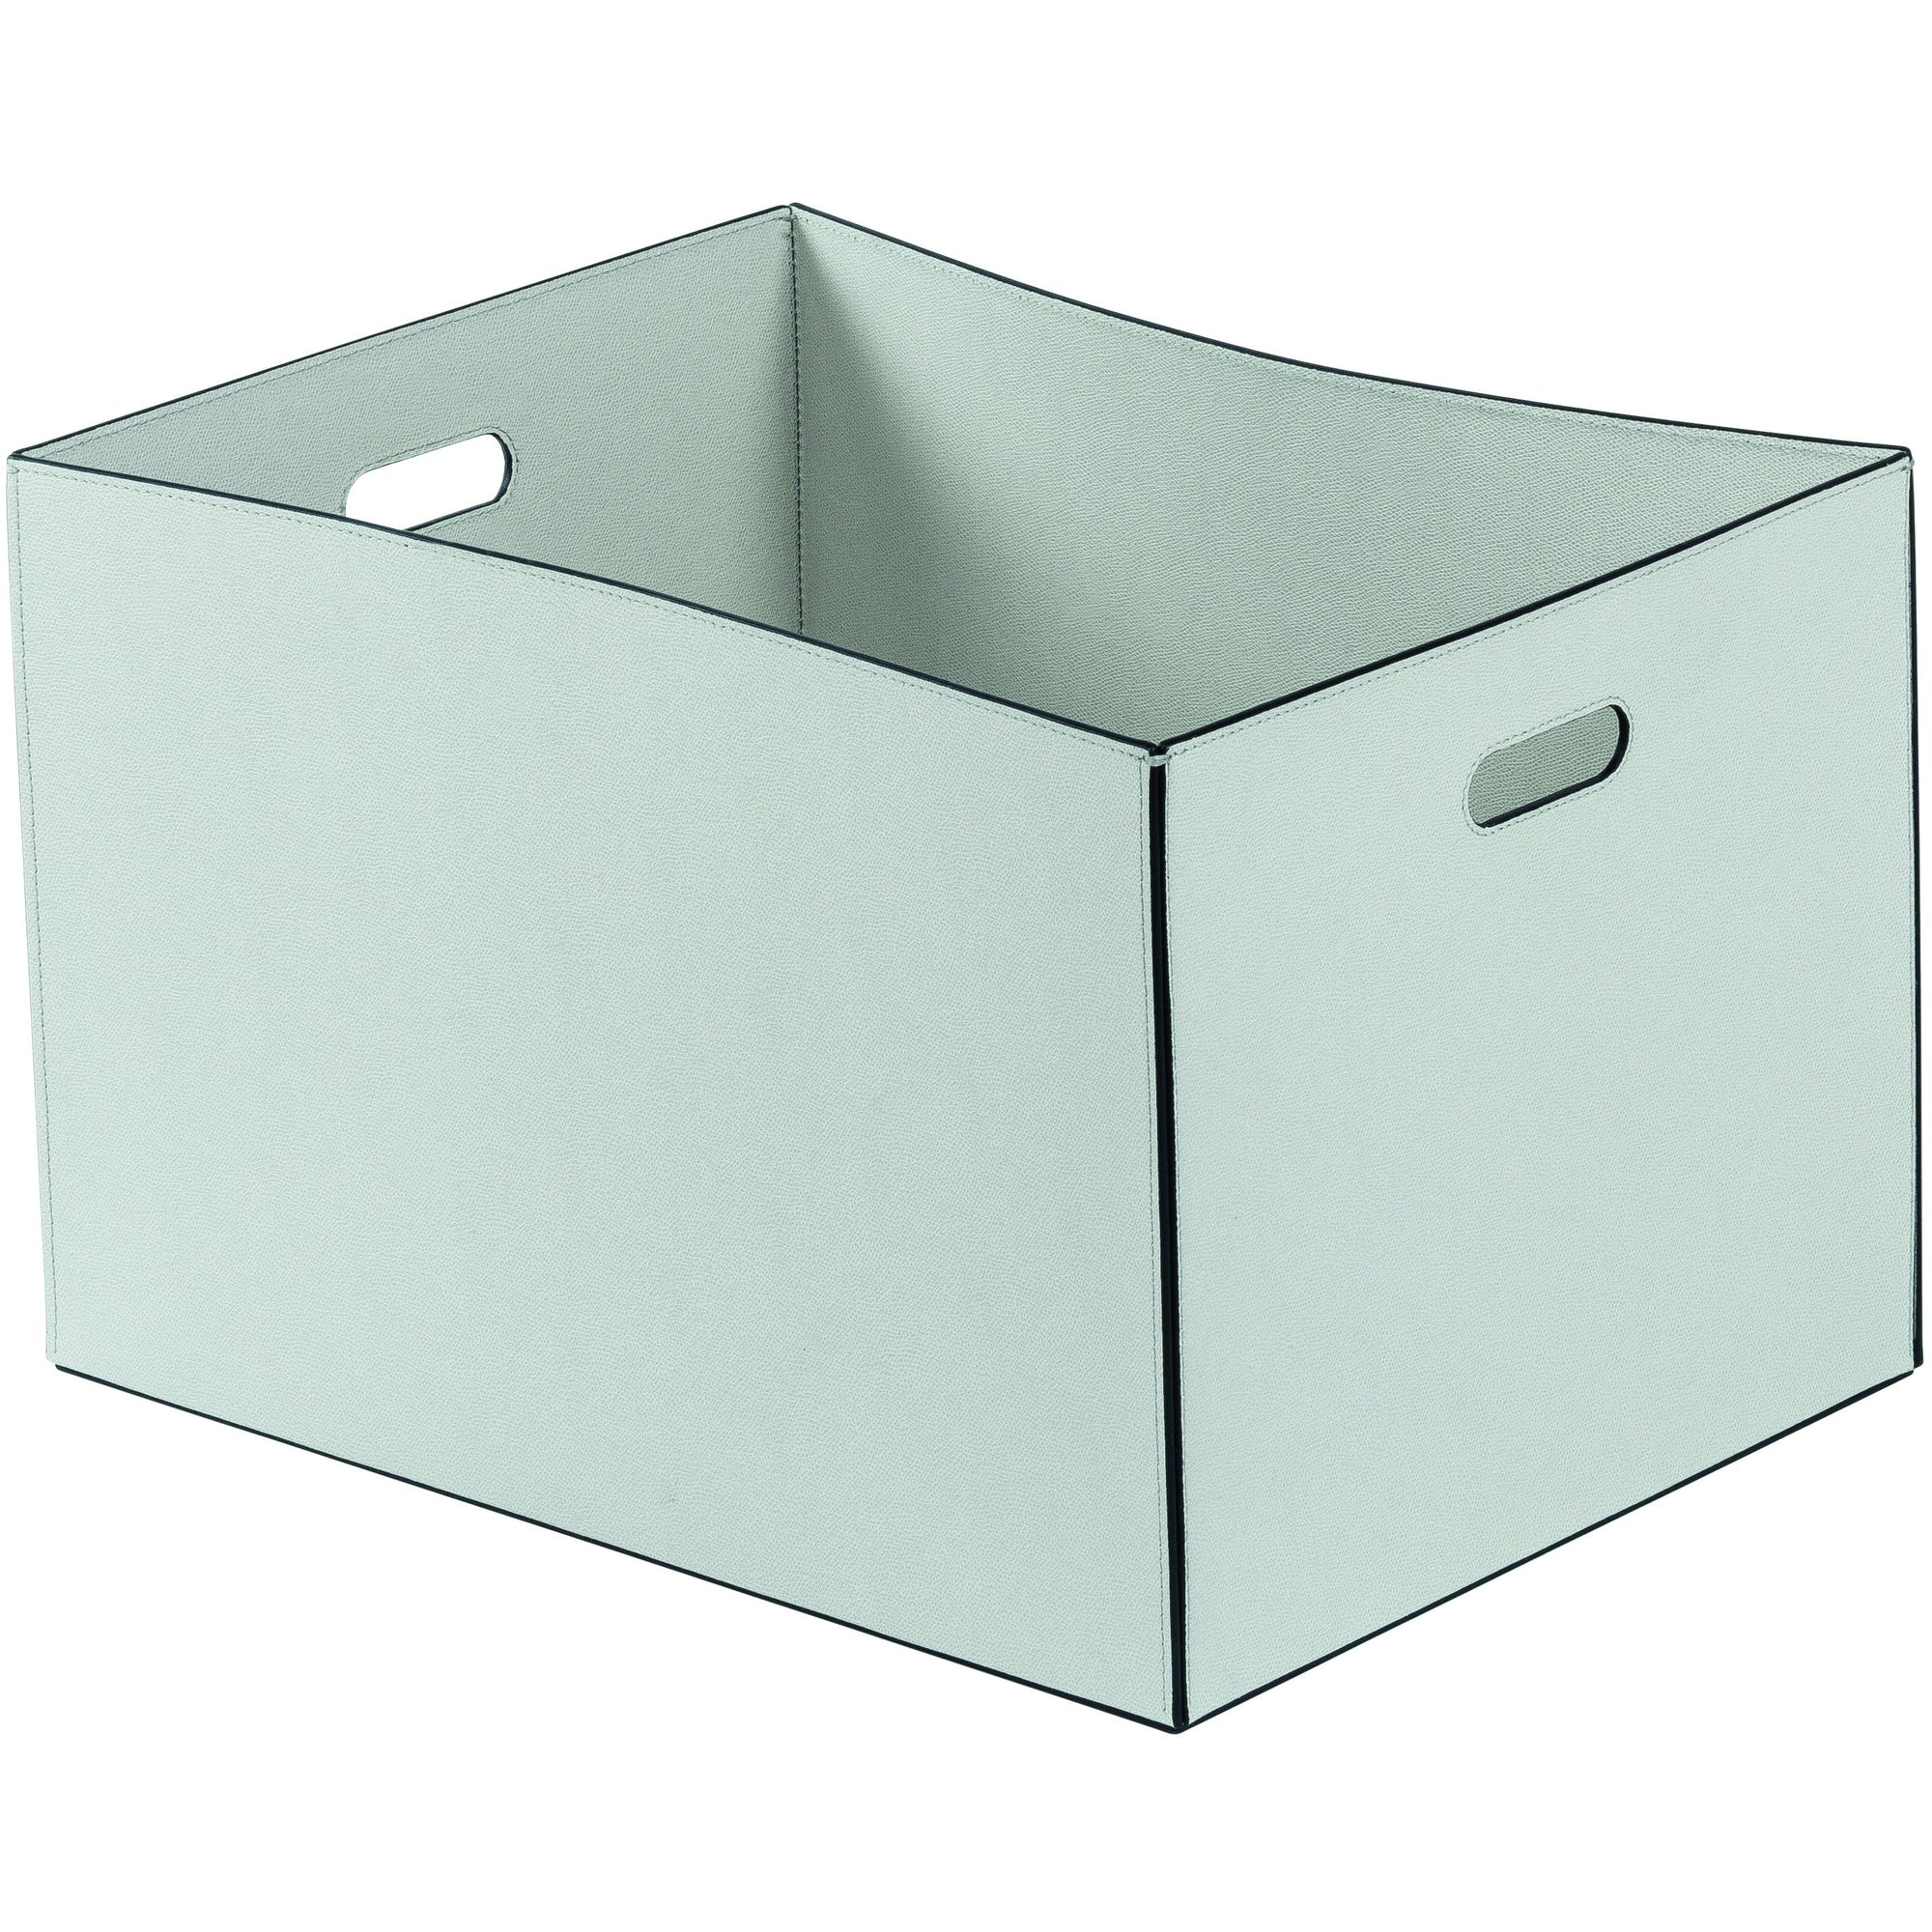 Marea Rectangular Storage Basket With Handles